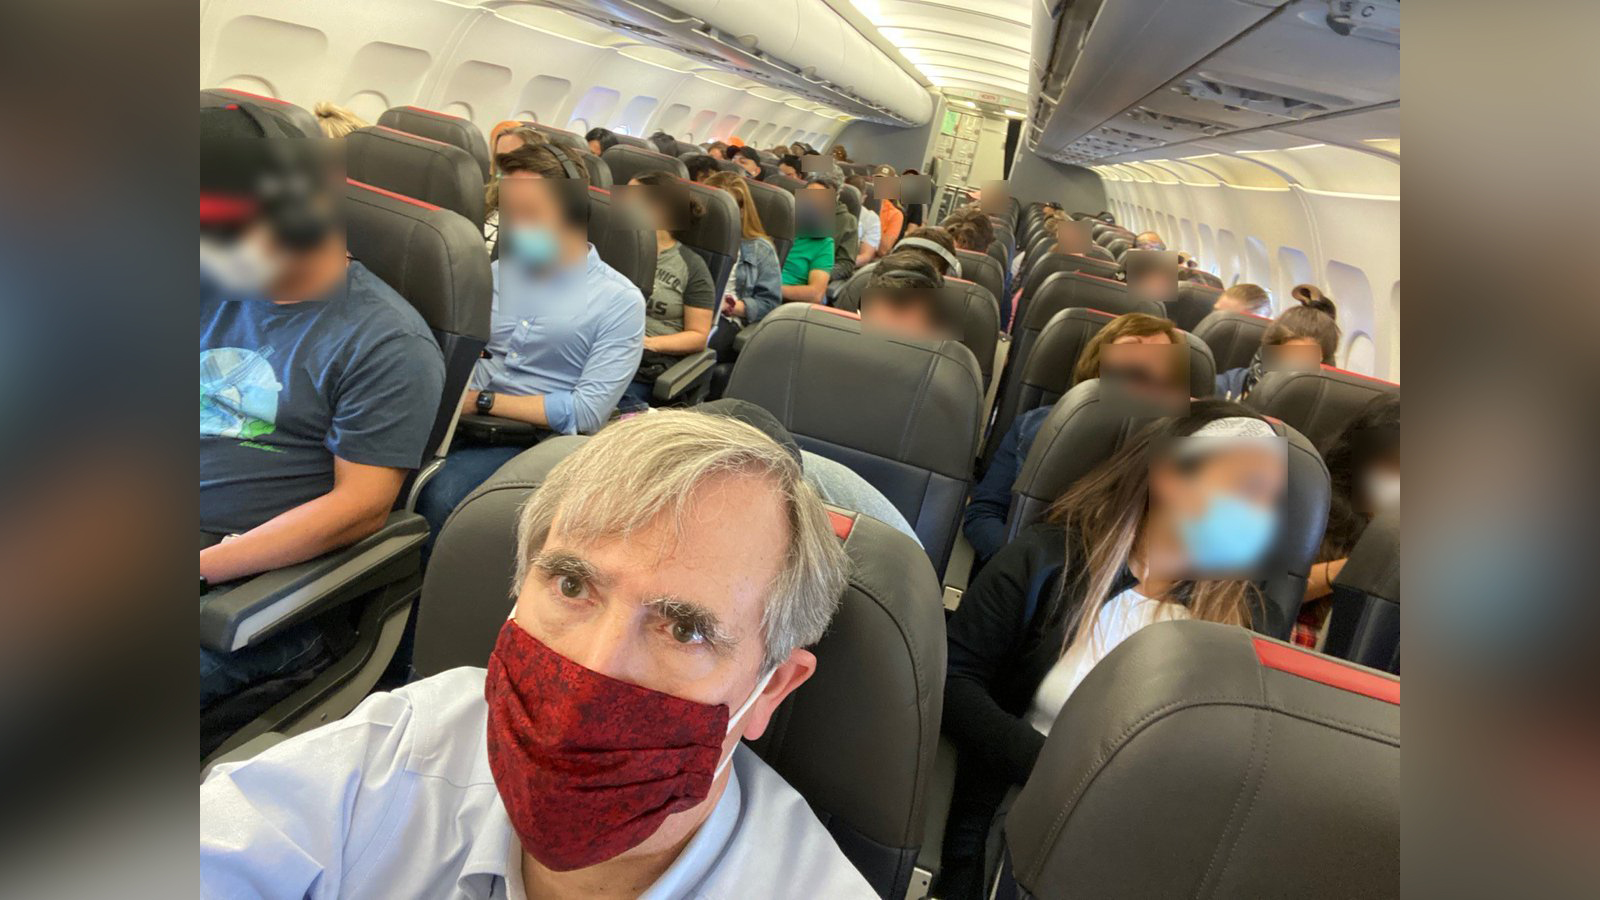 Senator Jeff Merkley takes a picture of a crowded American Airlines flight. (Senator Jeff Merkley via Twitter)